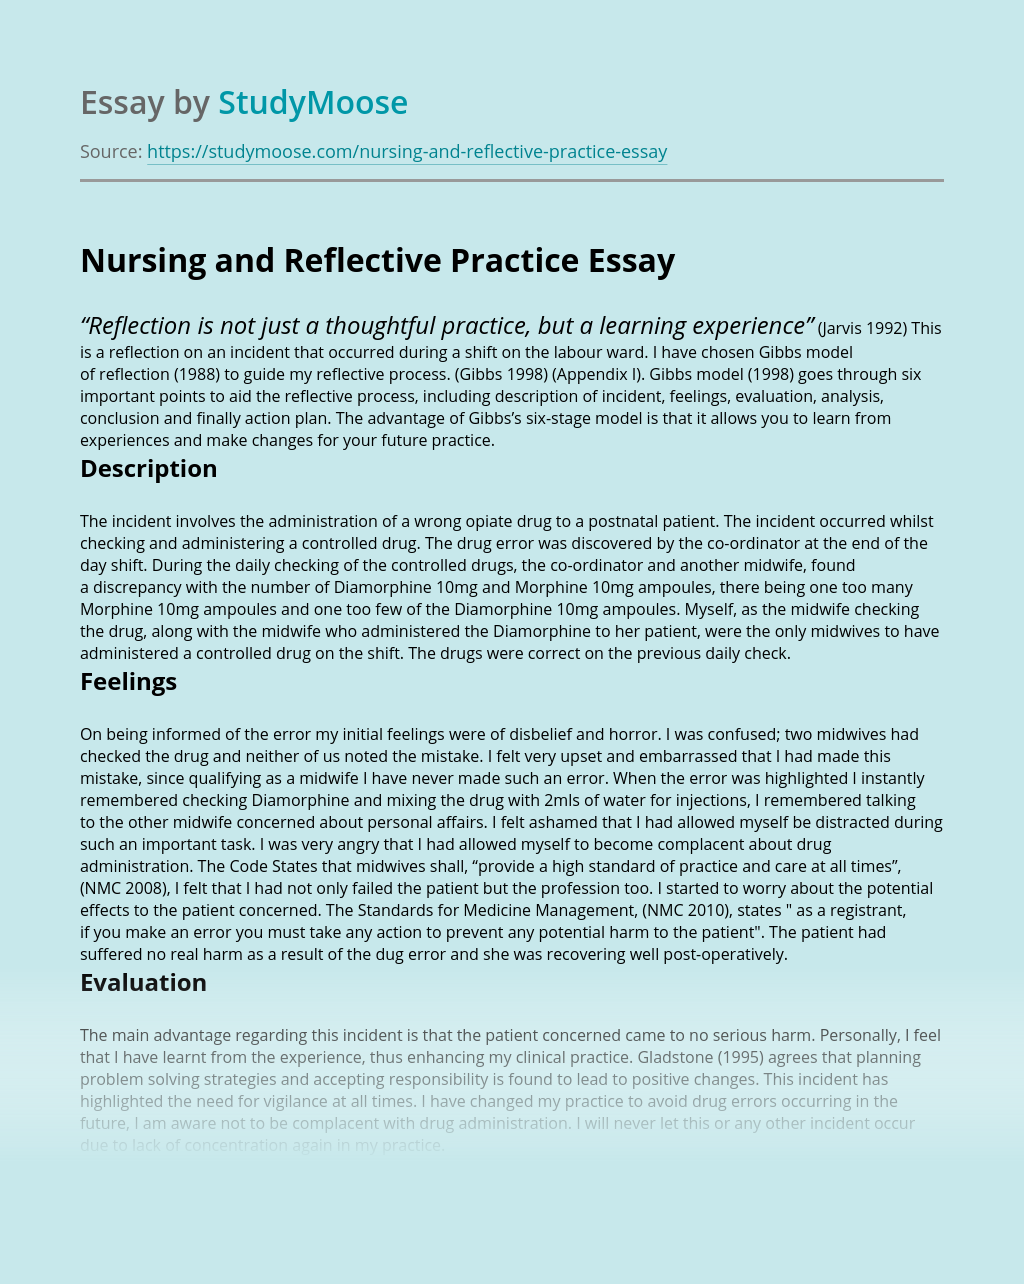 Nursing and Reflective Practice